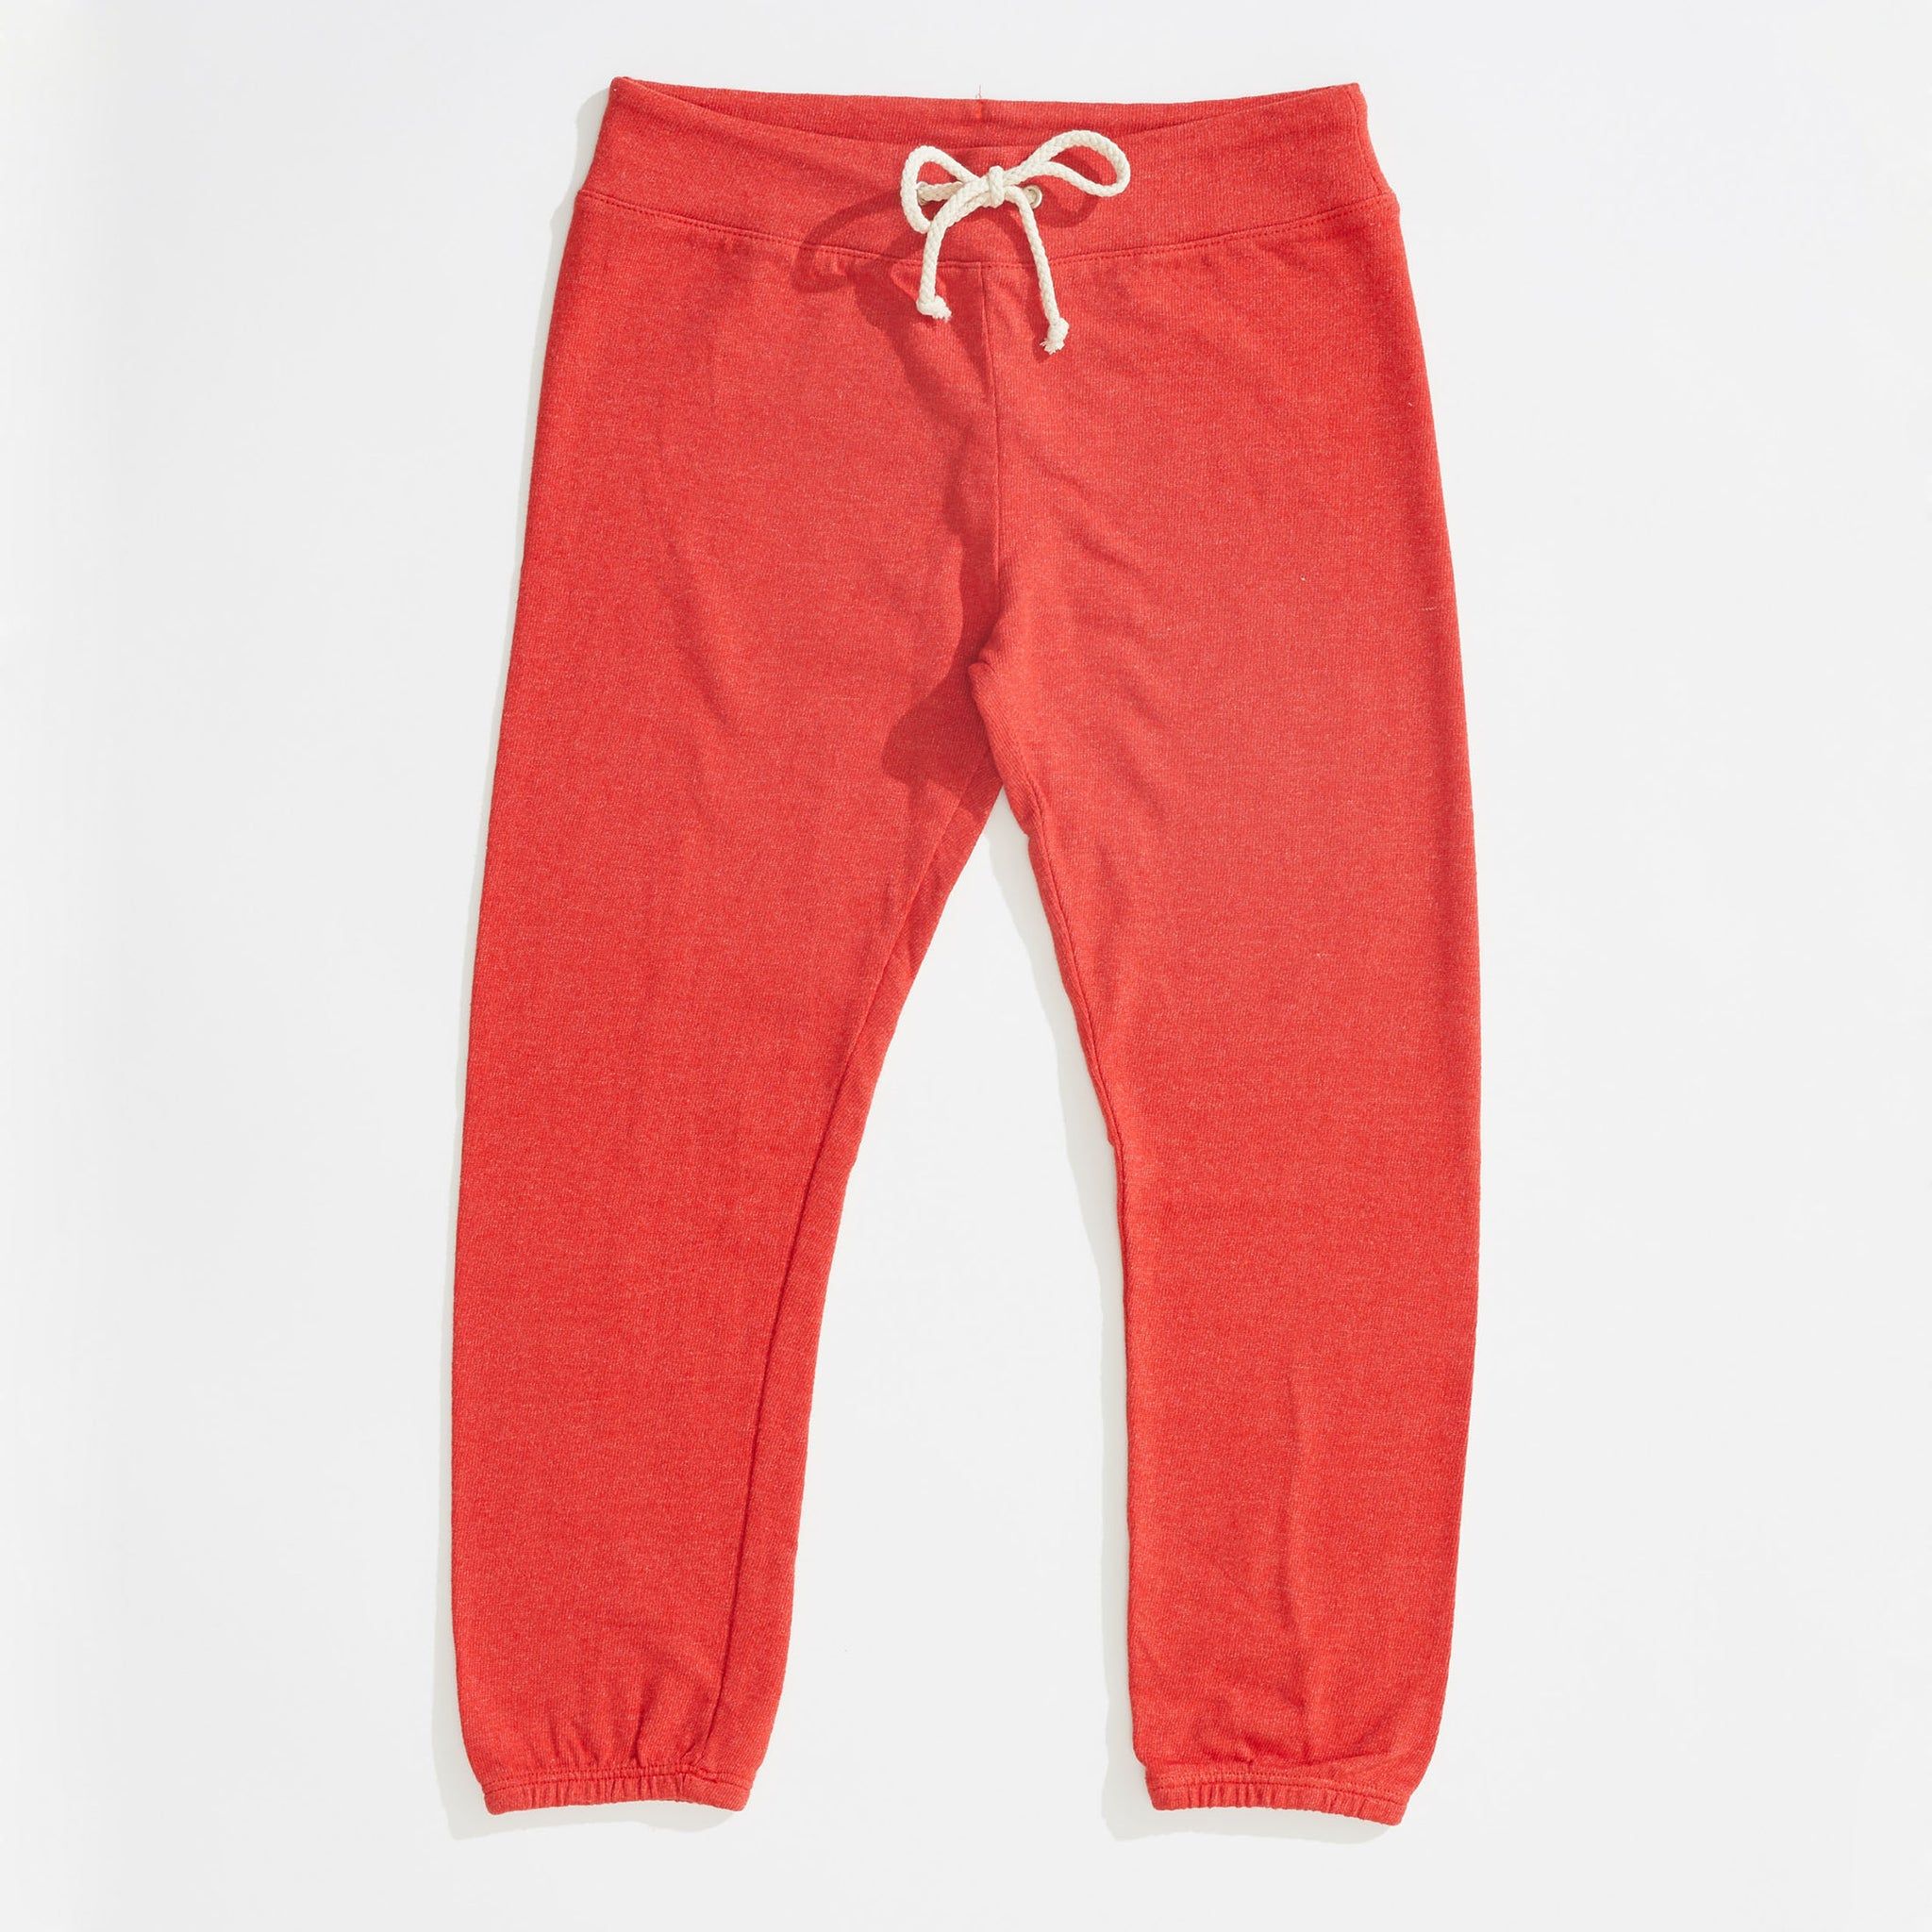 Kids Vintage Sweats